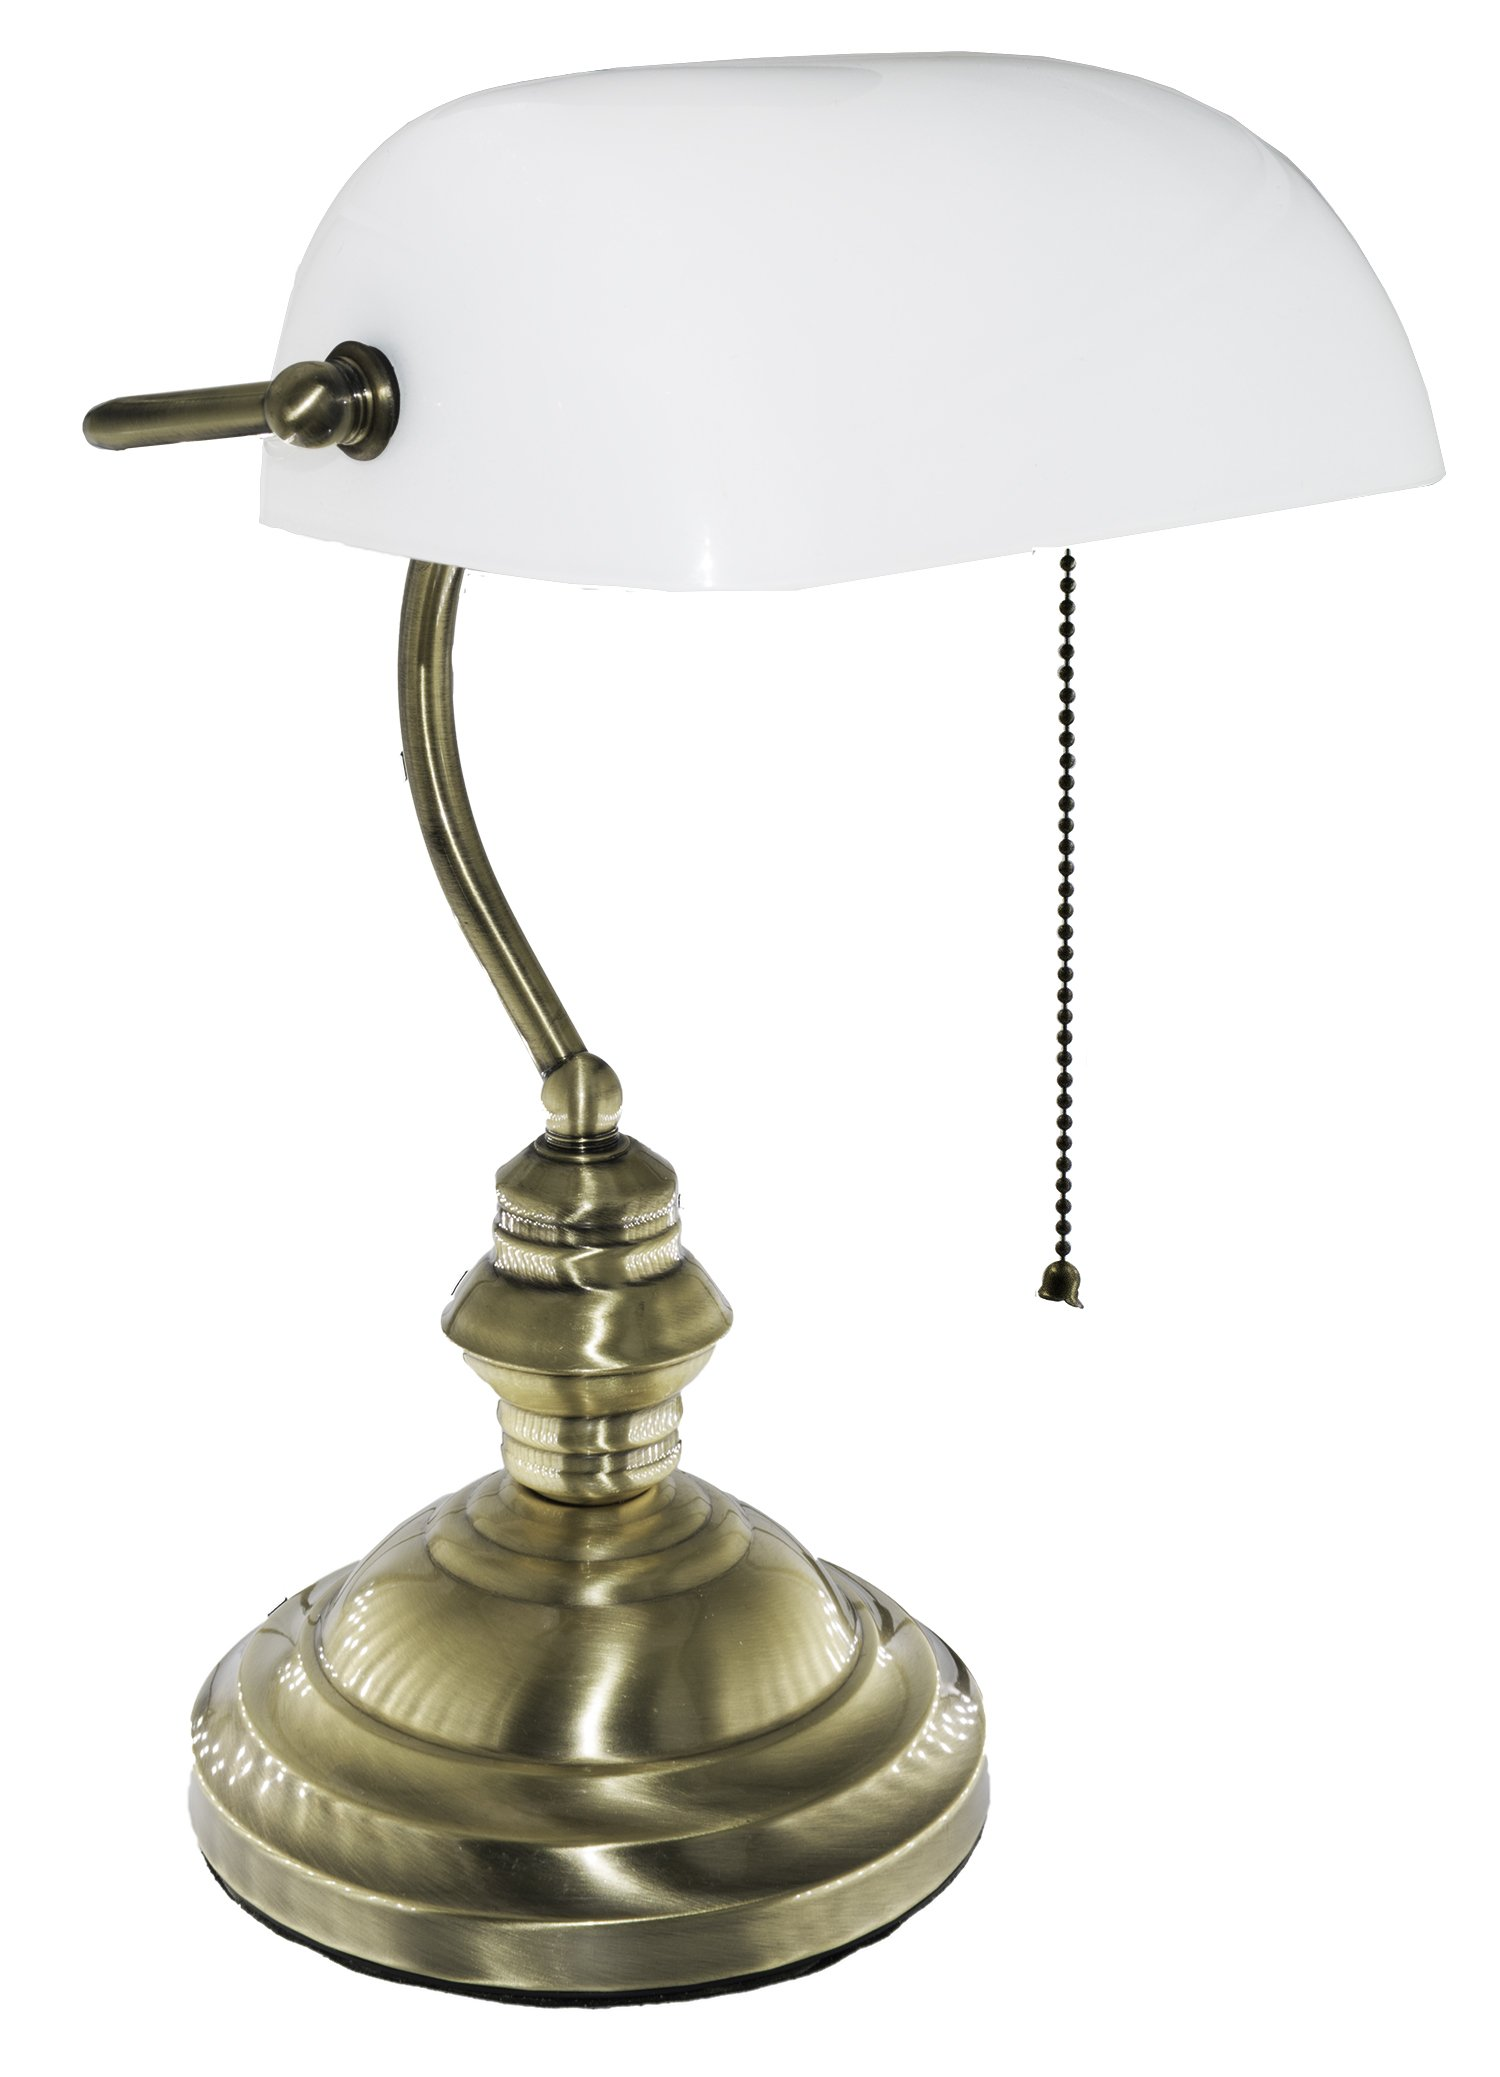 RUDY Bankers Desk Lamp 15''H, White Glass Shade with Brushed Gold Finish Brass Base